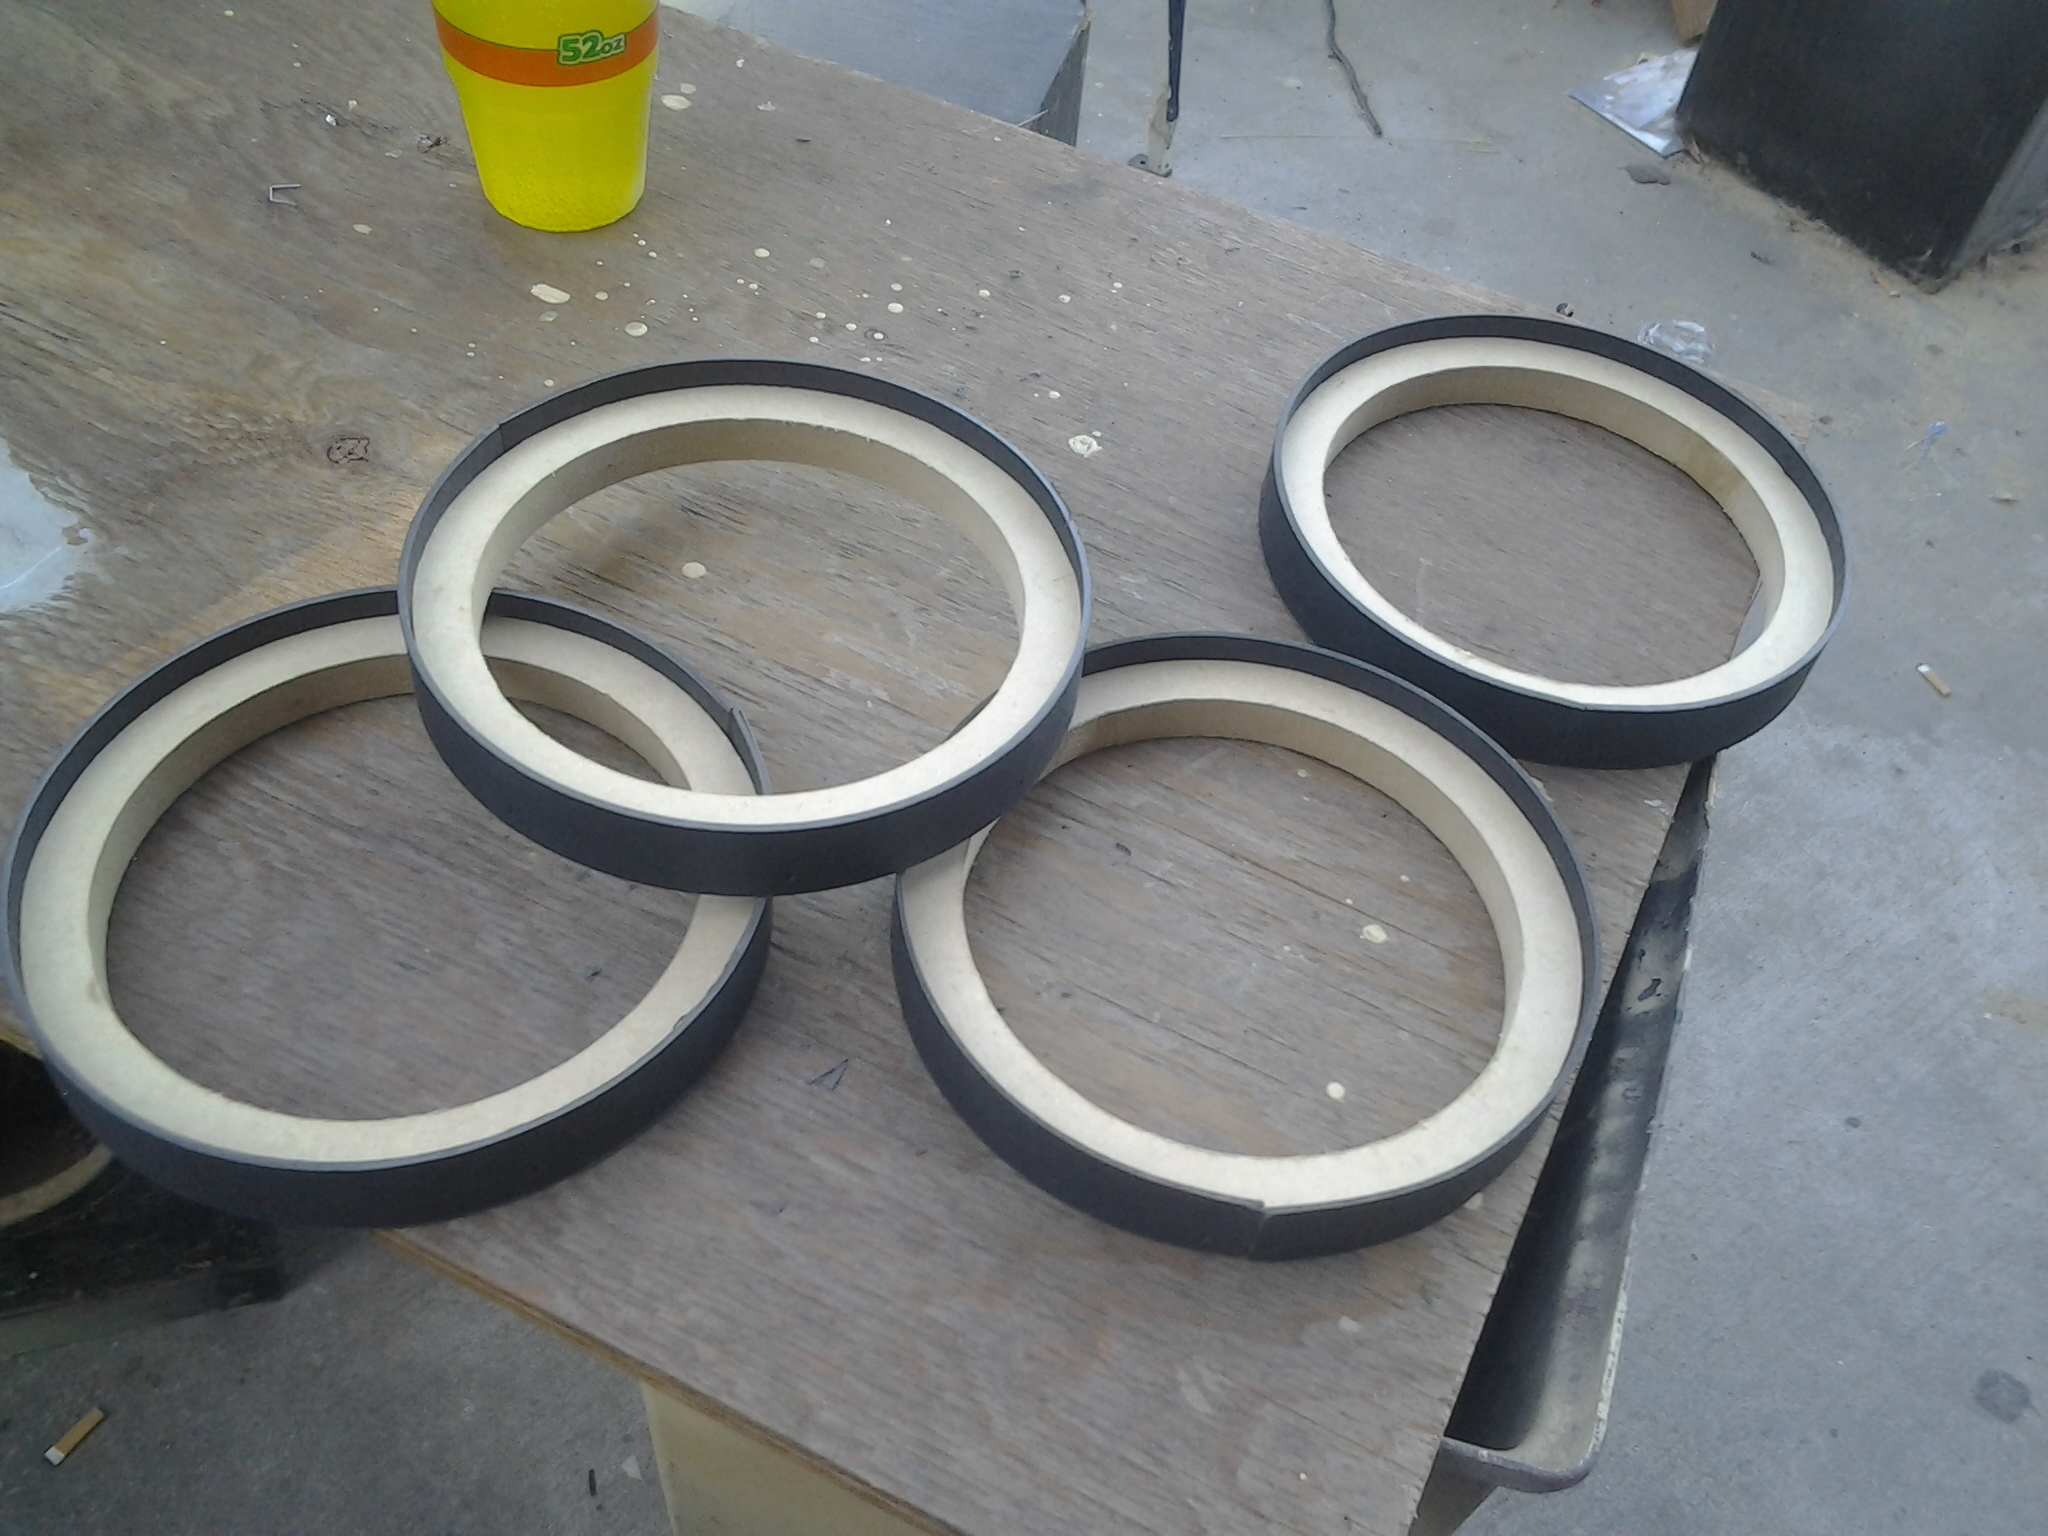 Picture of Flush Mounting the Rings